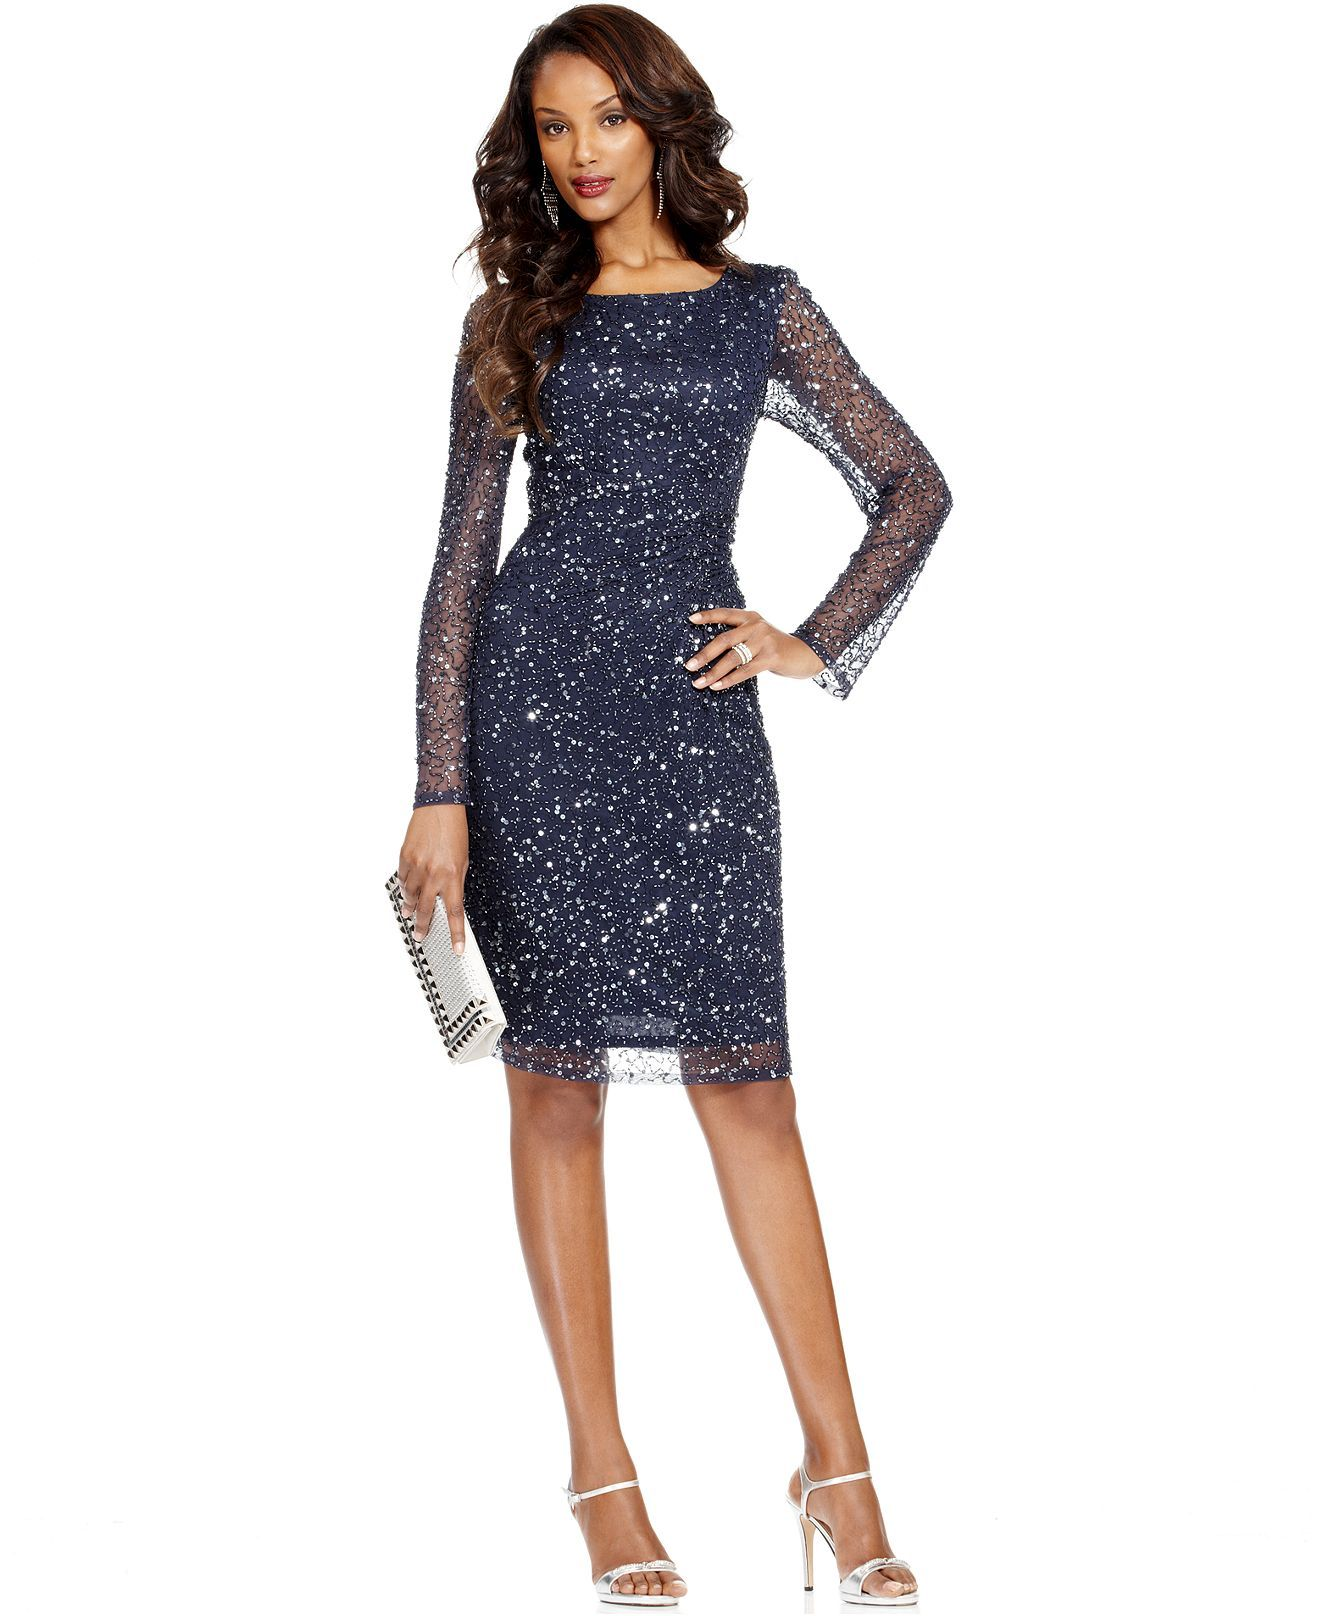 372f75bf6c38 Christmas Dress!? Macy's...Patra Dress, Long-Sleeve Beaded Sequin ...